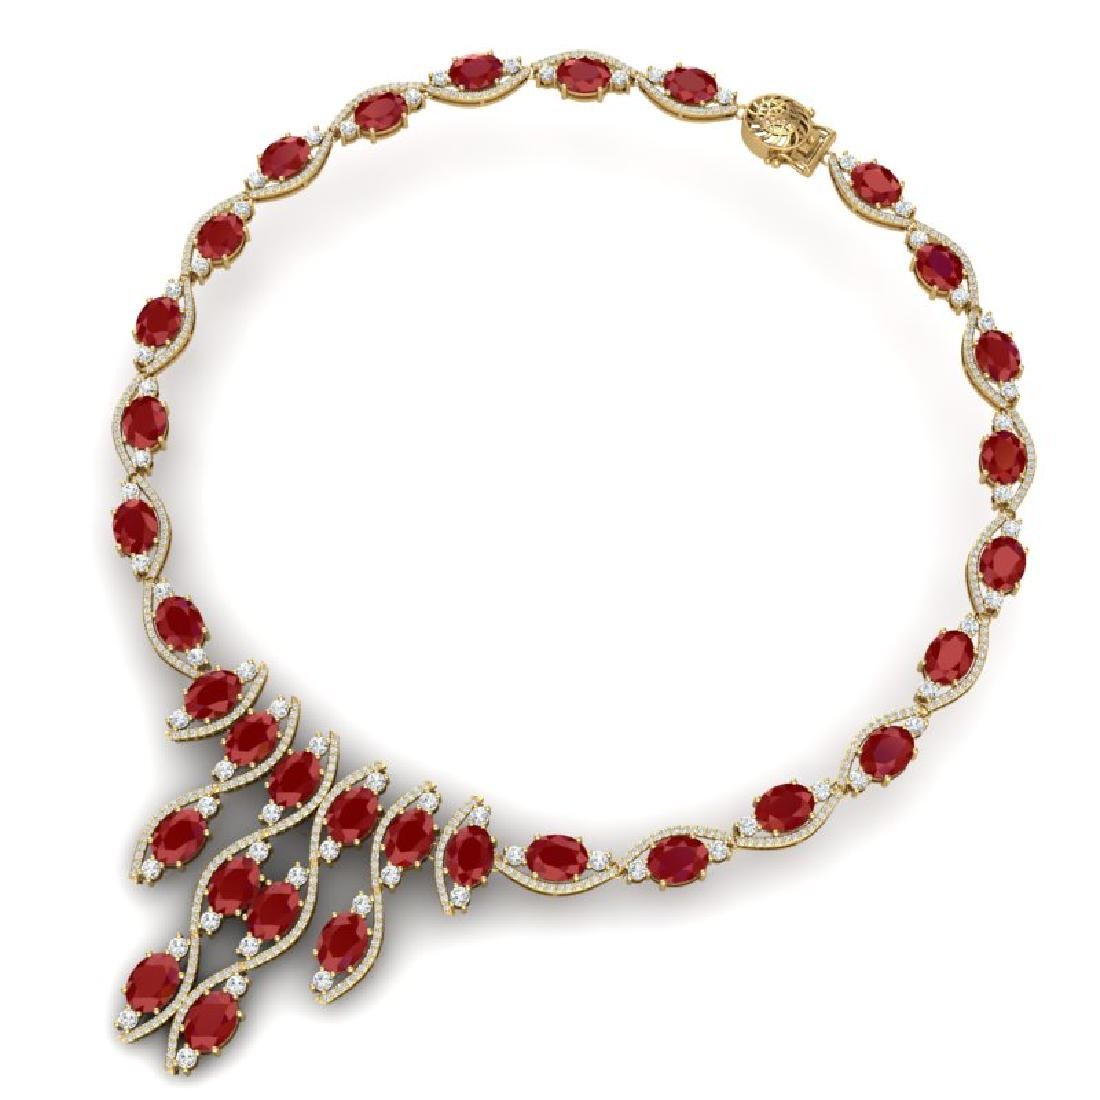 65.93 CTW Royalty Ruby & VS Diamond Necklace 18K Yellow - 3